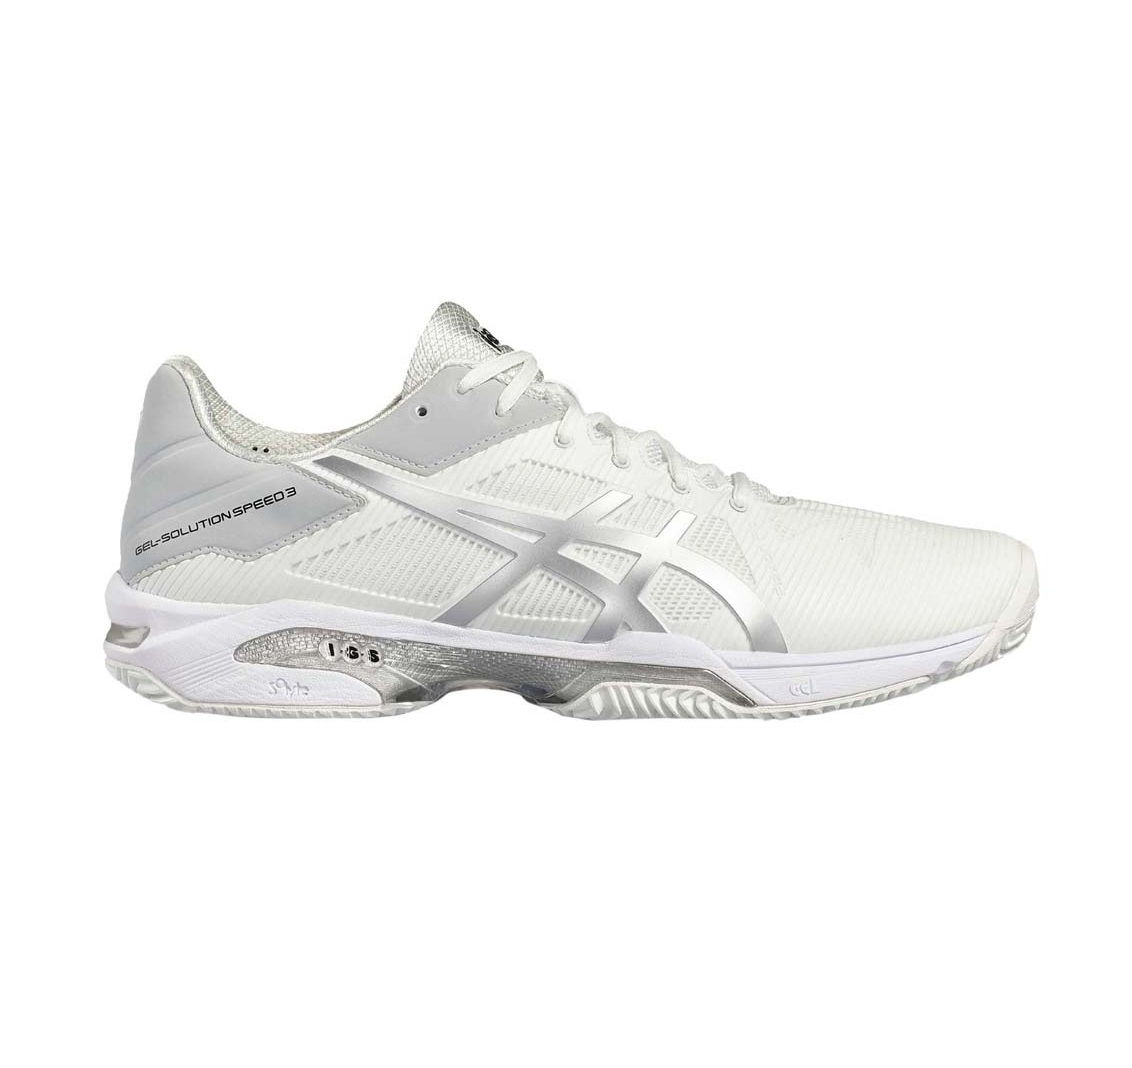 Audaz Tentación ex  ASICS GEL-SOLUTION SPEED 3 CLAY - WHITE/ SILVER - Padel Tenis Coronado